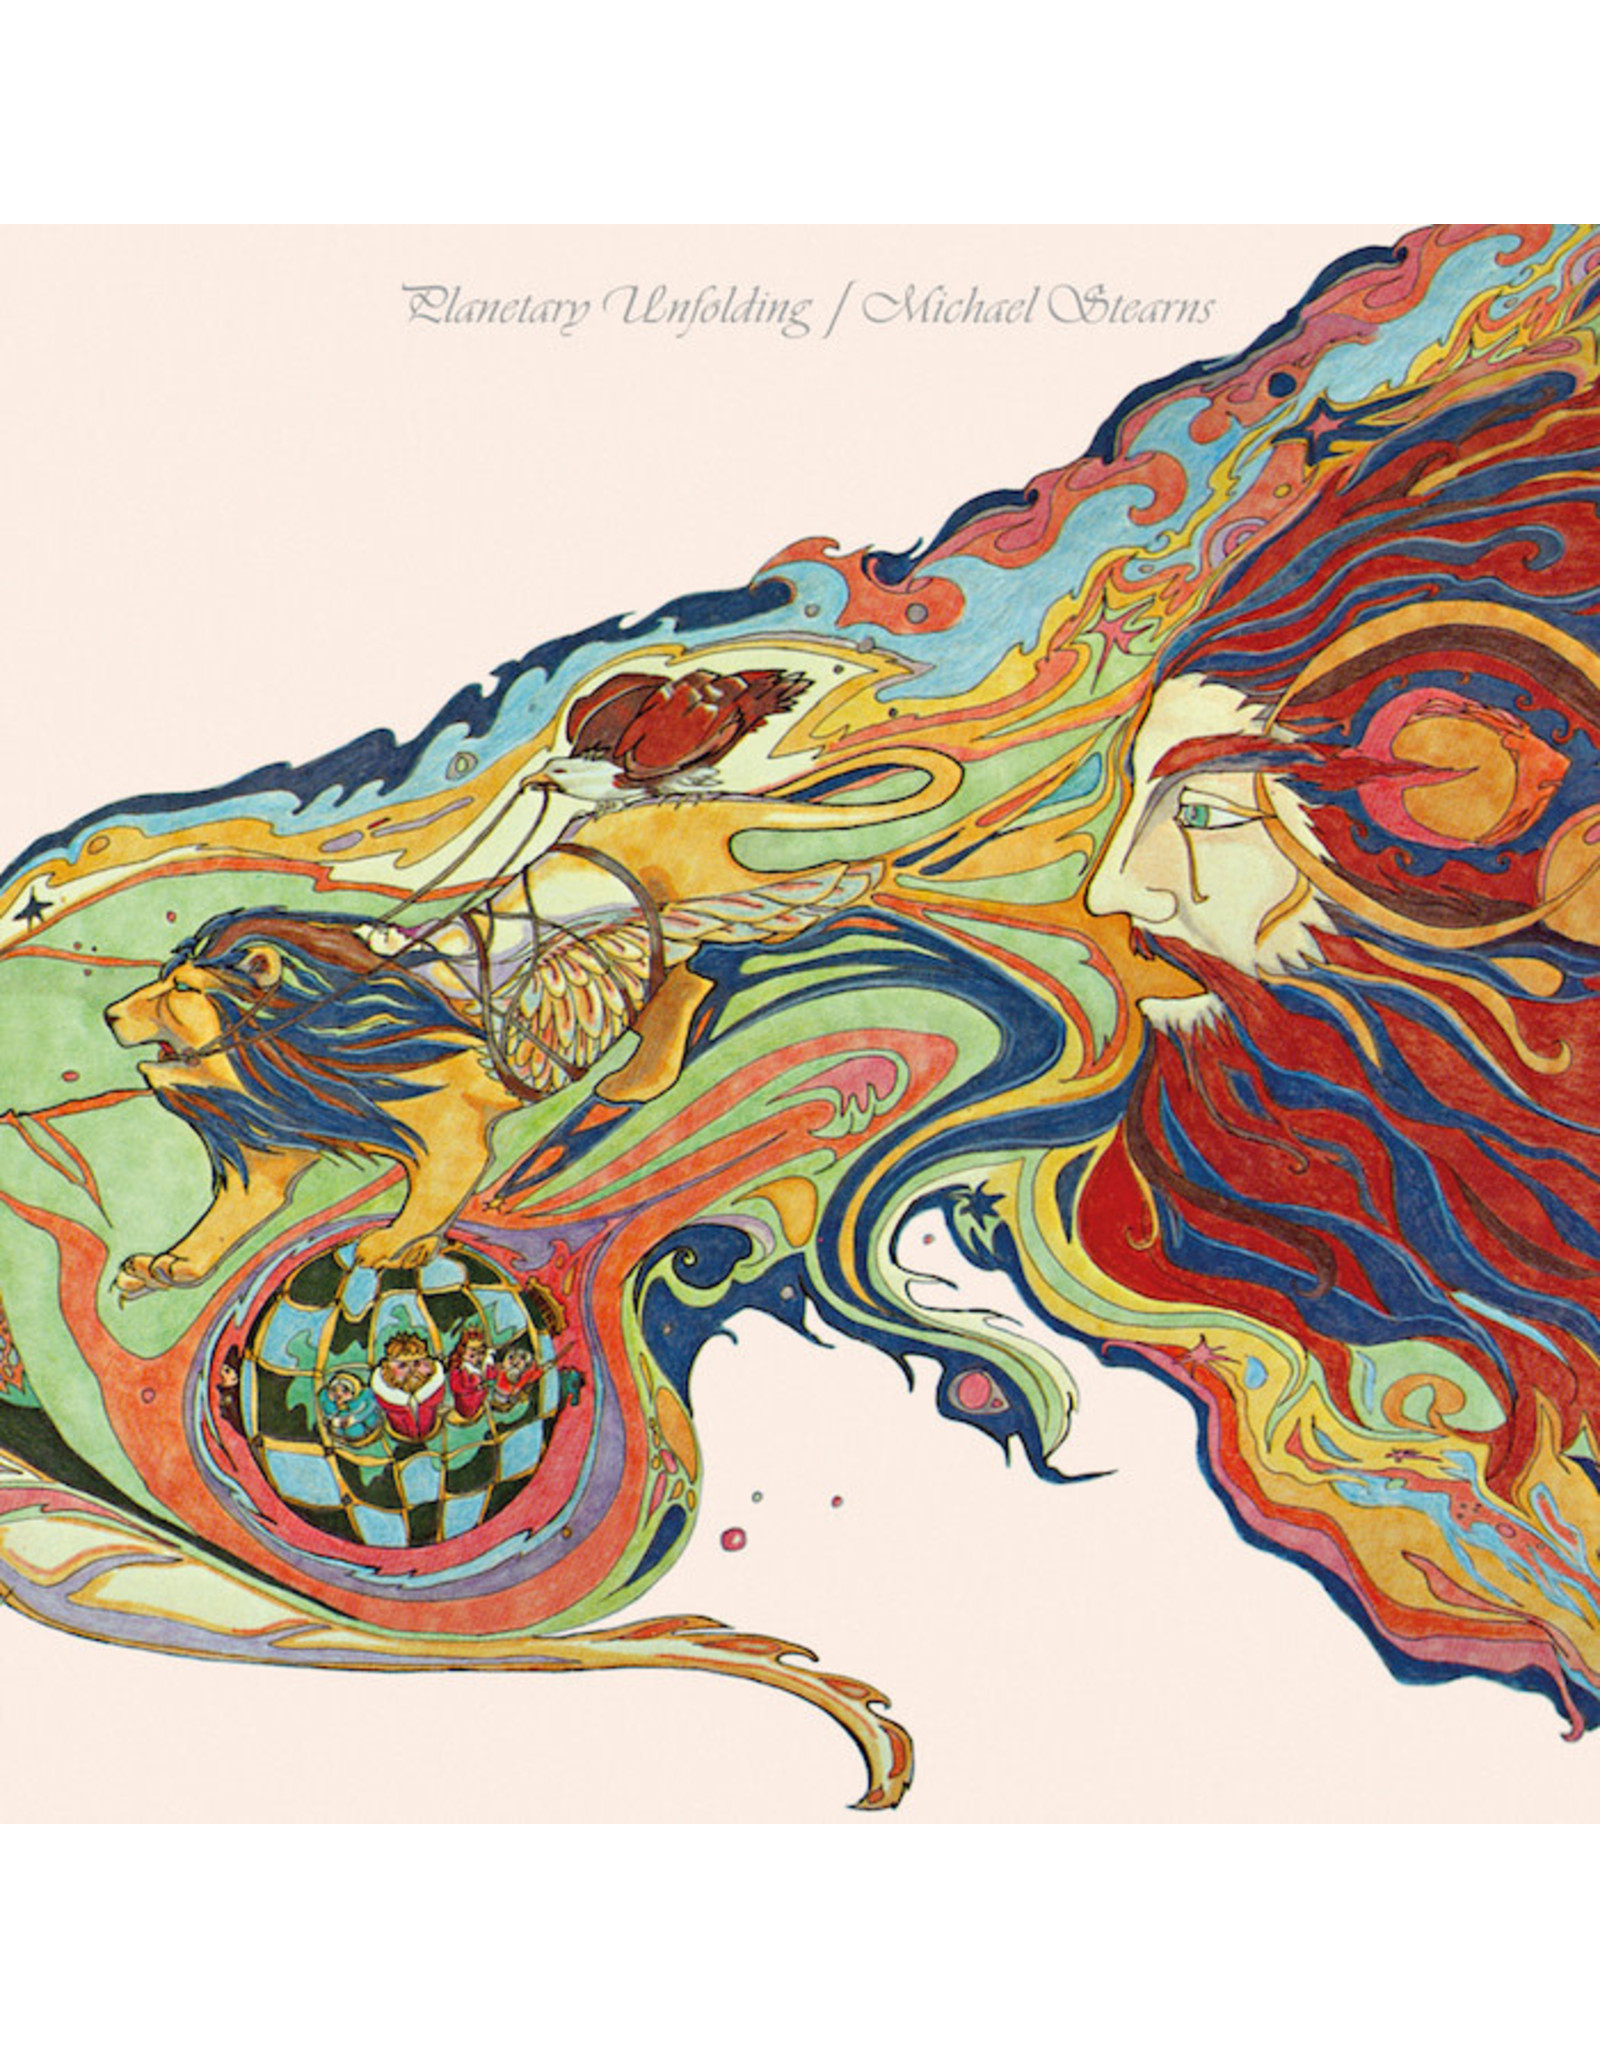 Emotional Rescue Stearns, Michael: Planetary Unfolding LP